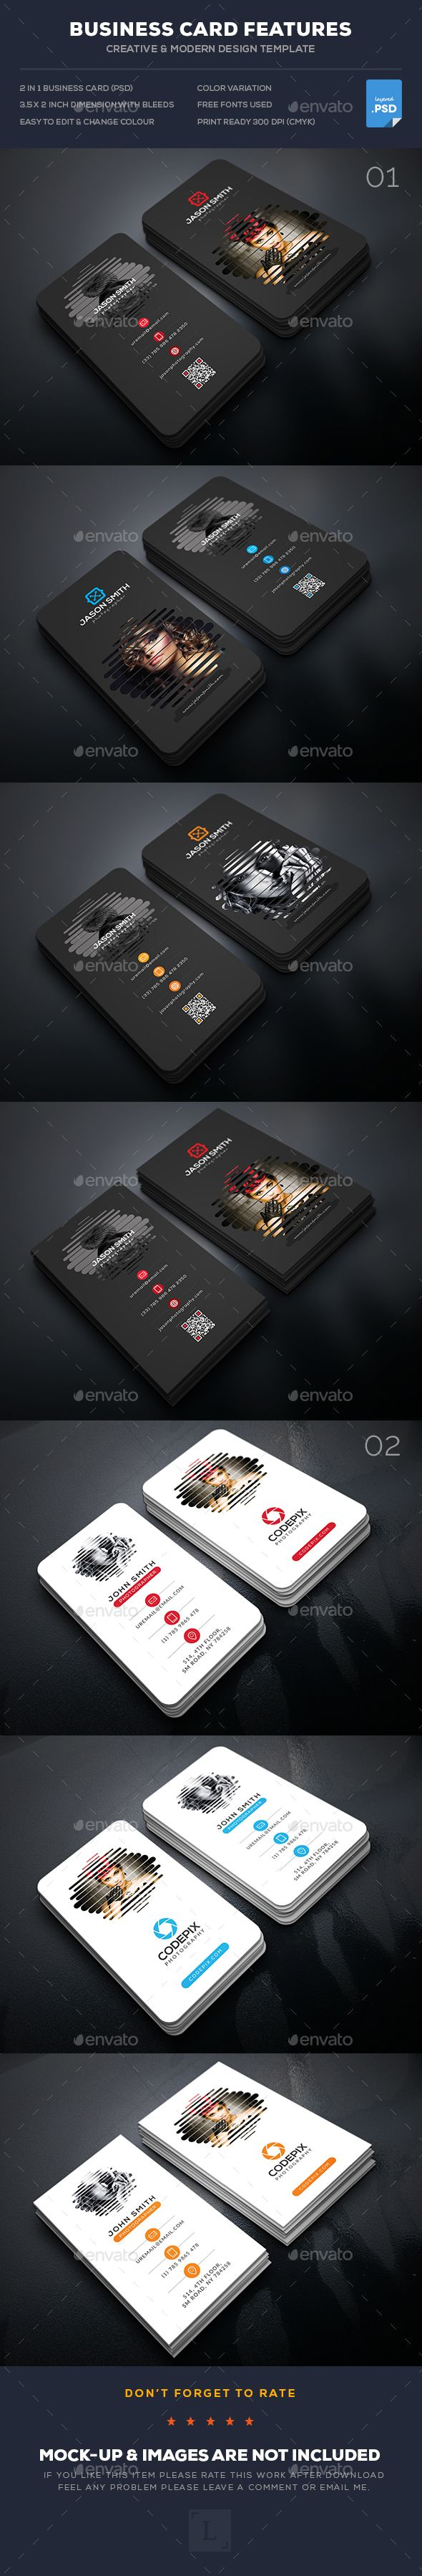 35 Best Business Card Ideas Images On Pinterest Business Card